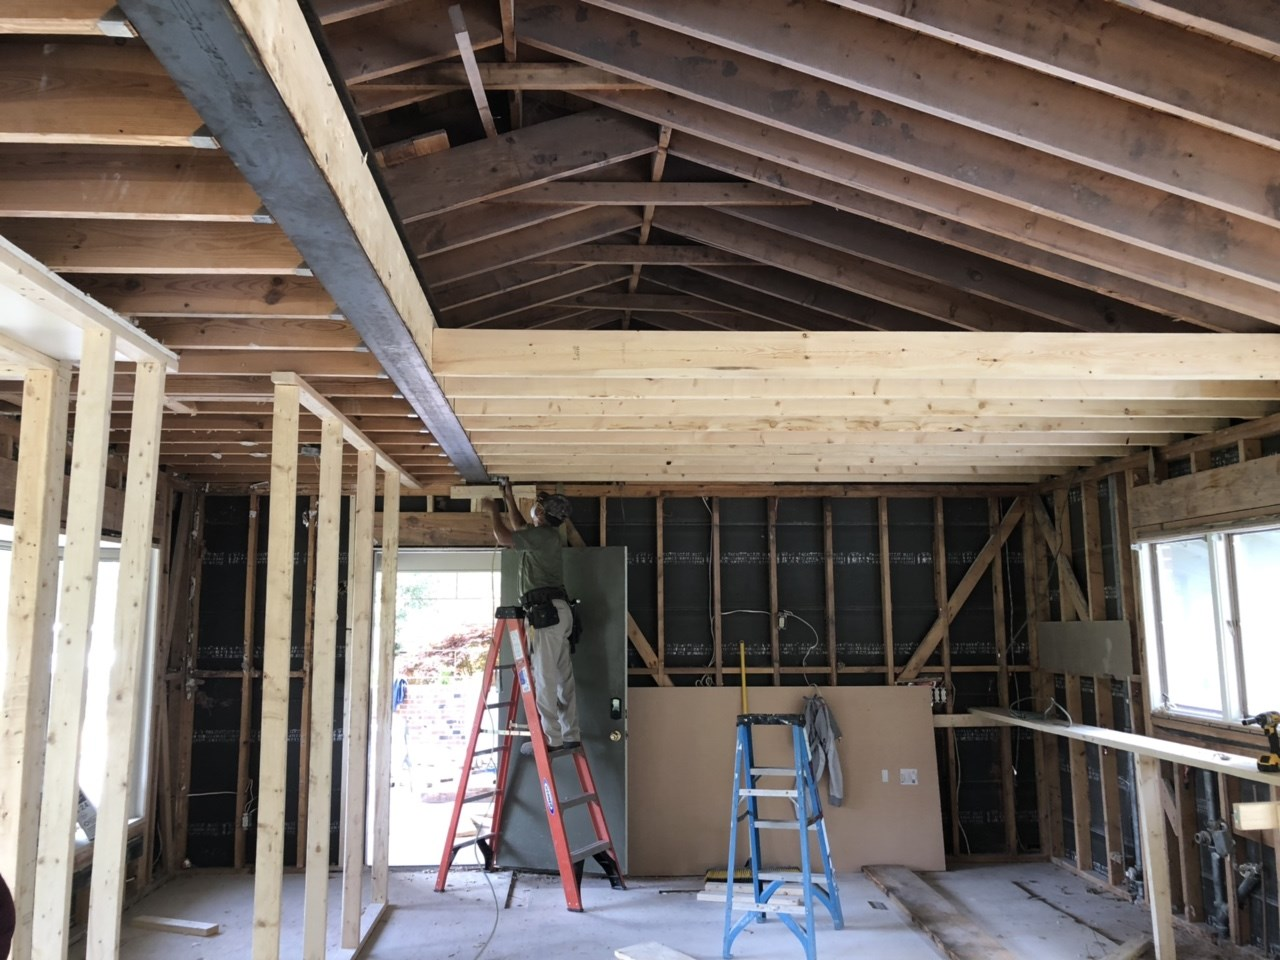 New ceiling joists are going up over what will become the new kitchen.